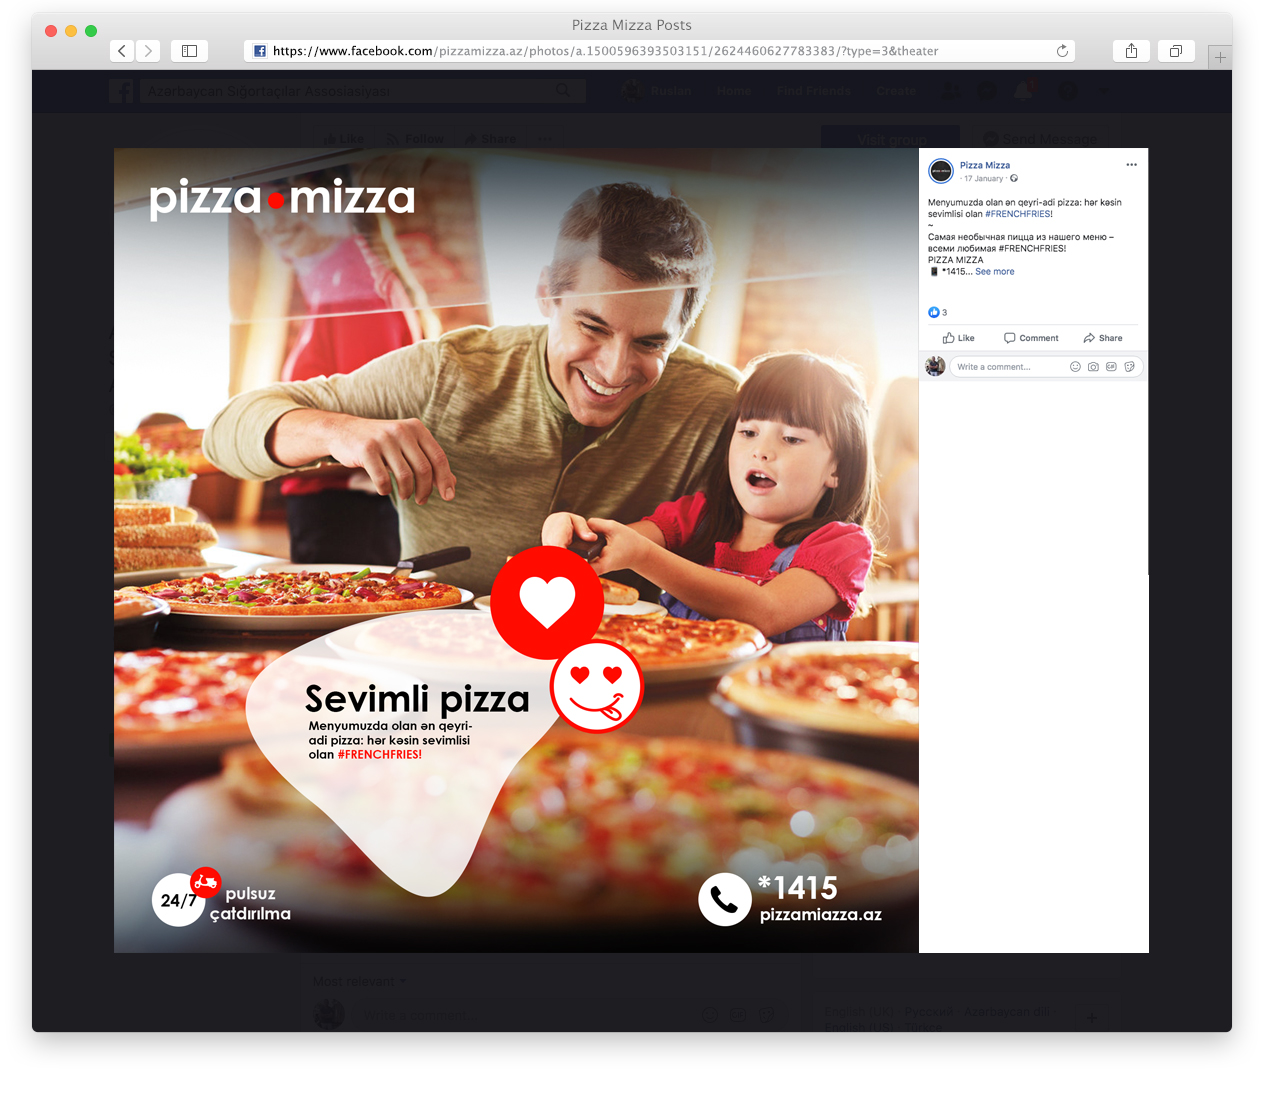 18pizza-mizza-case.jpg